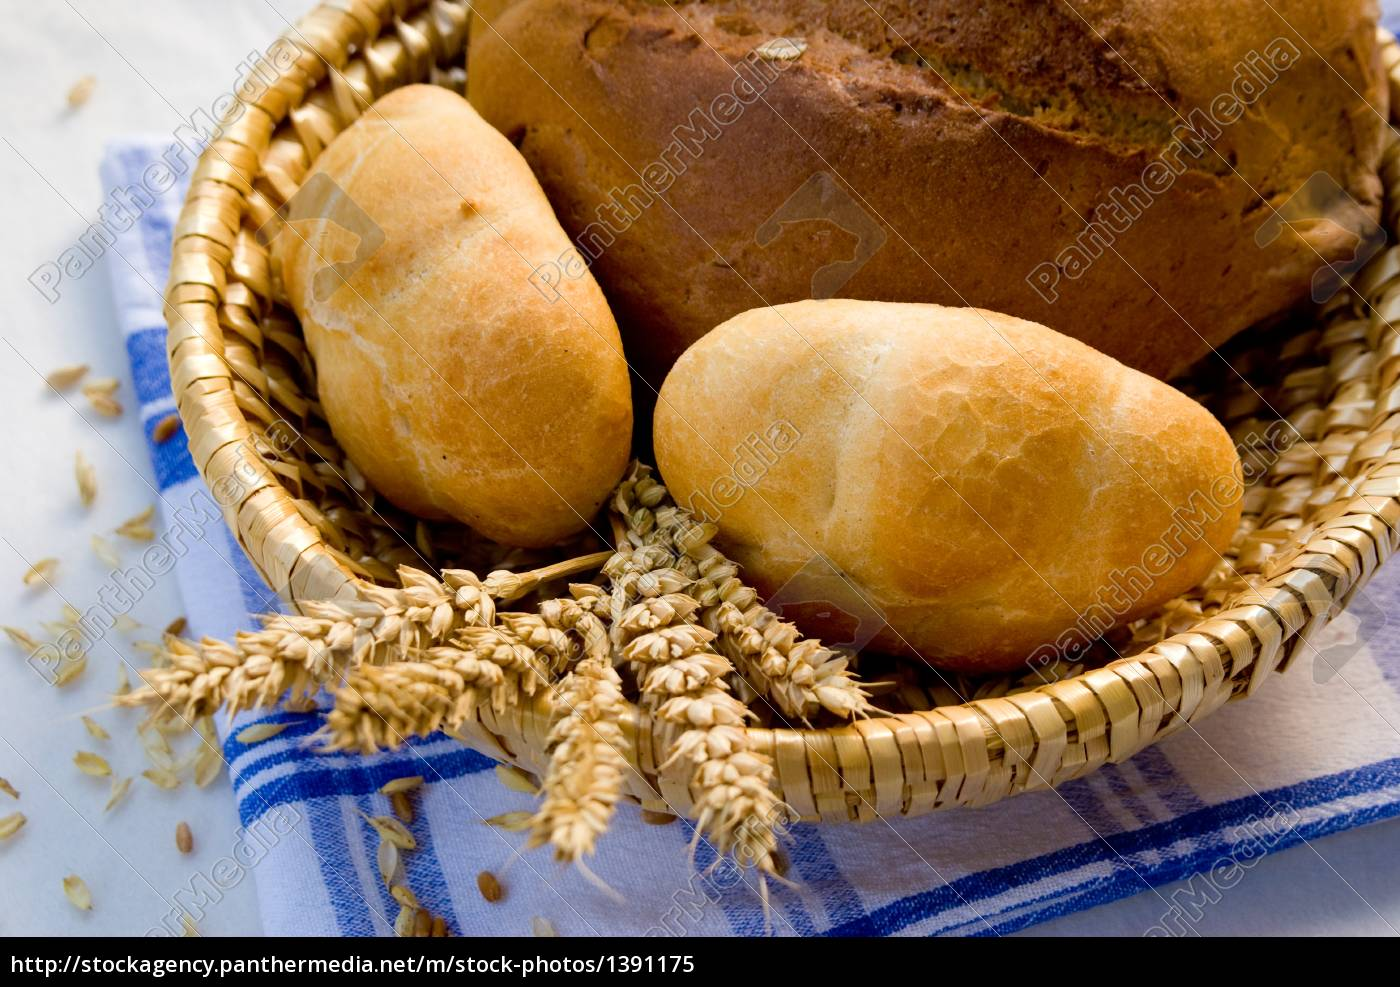 baked, food - 1391175